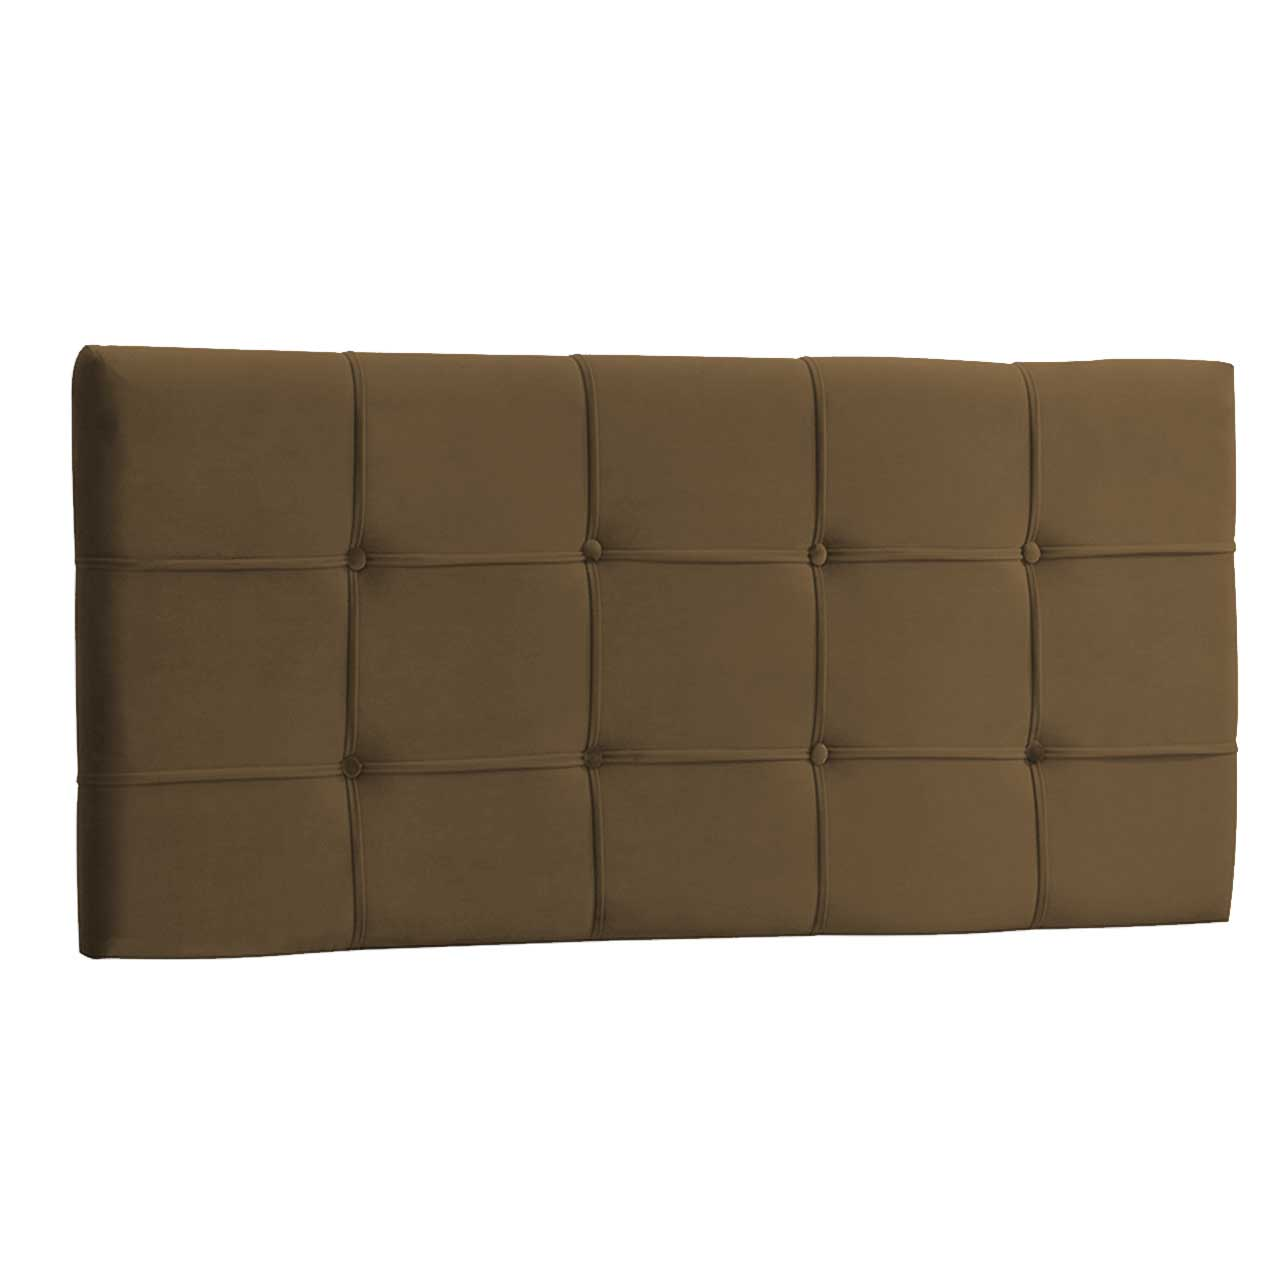 Cabeceira Painel King Ana Luisa 1,95 m Suede Marrom